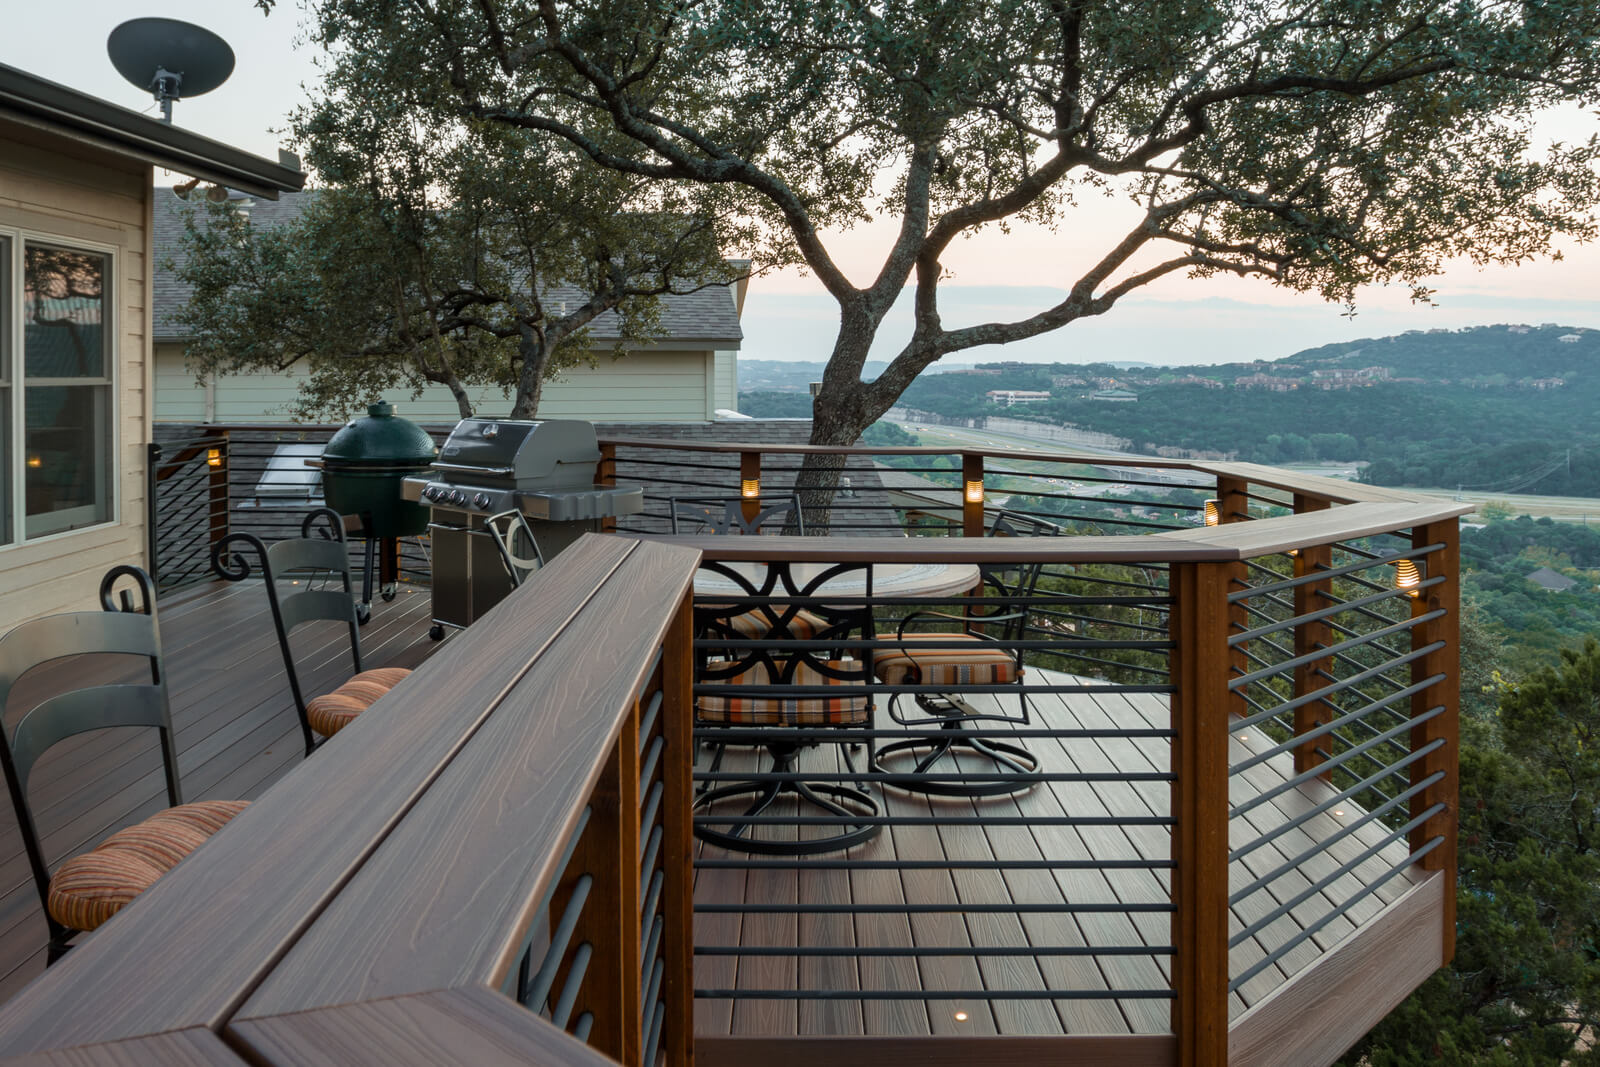 Backyard wood deck with outdoor kitchen